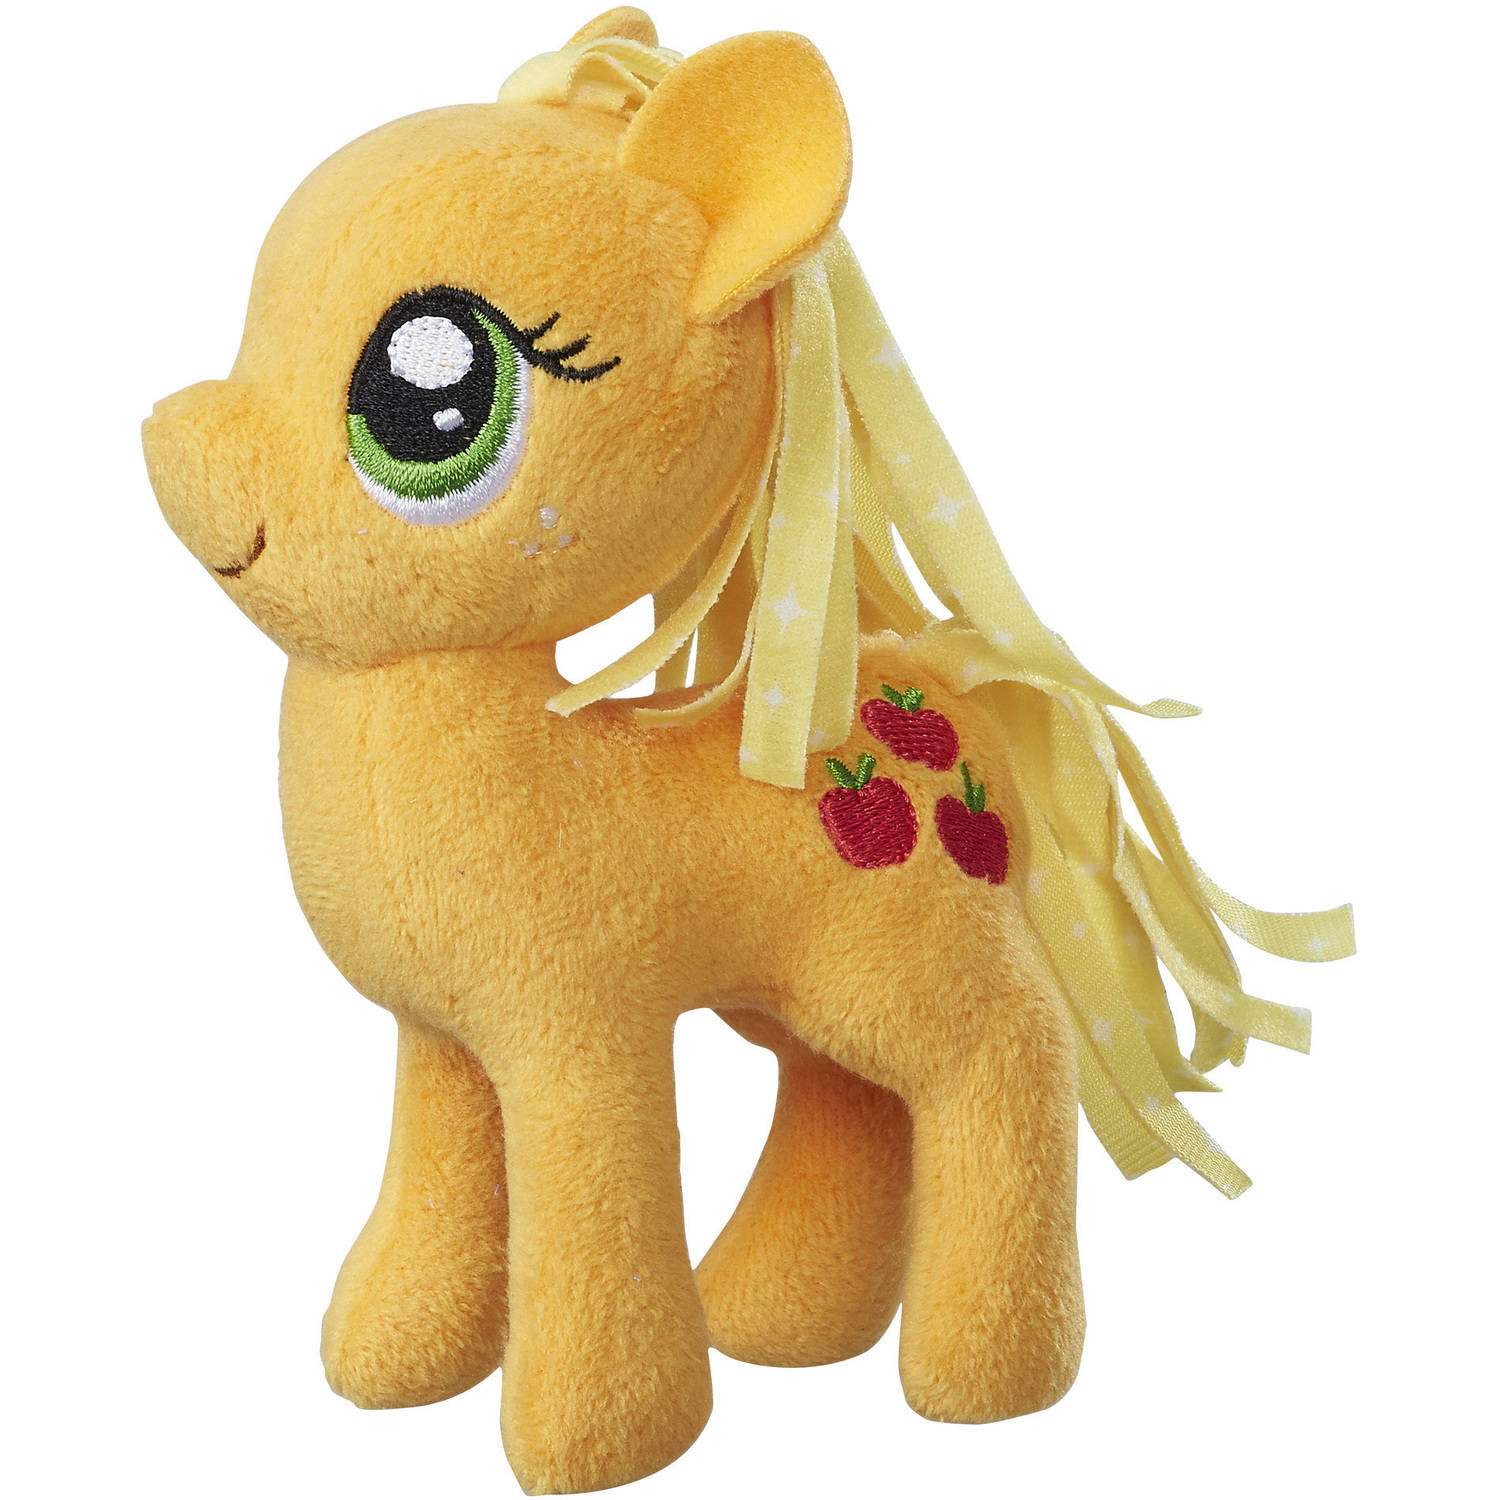 My Little Pony Friendship is Magic Applejack Small Plush by Hasbro